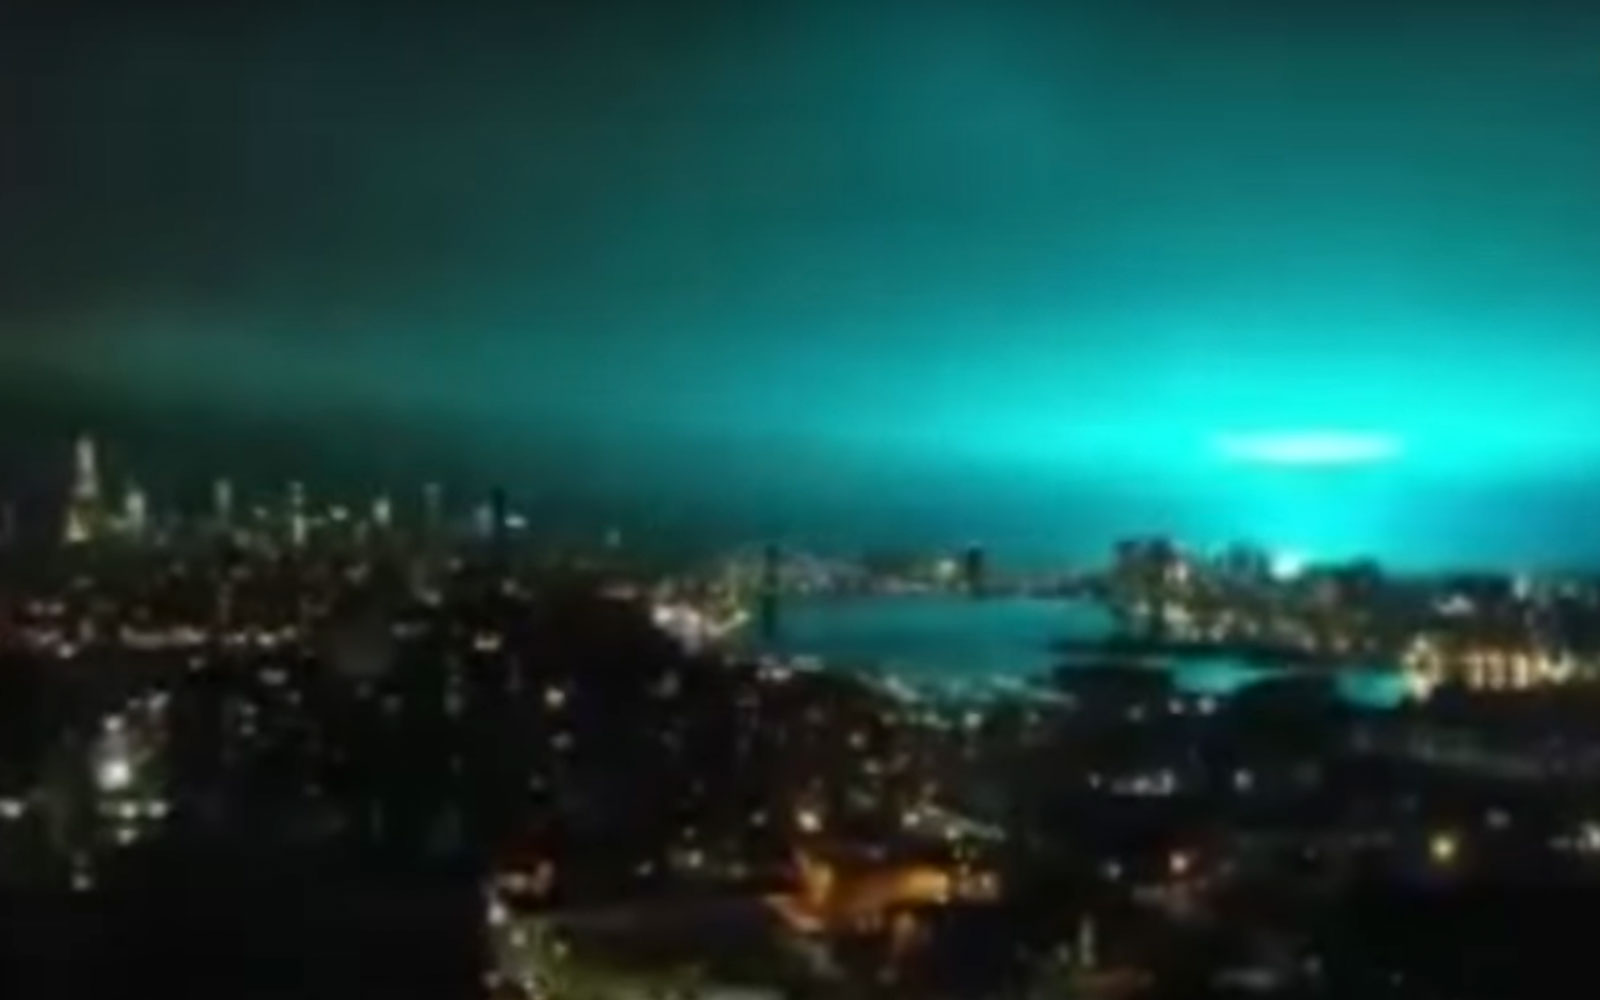 People Thought Aliens Were Invading New York City Because of This Mysterious Blue Light (Video)